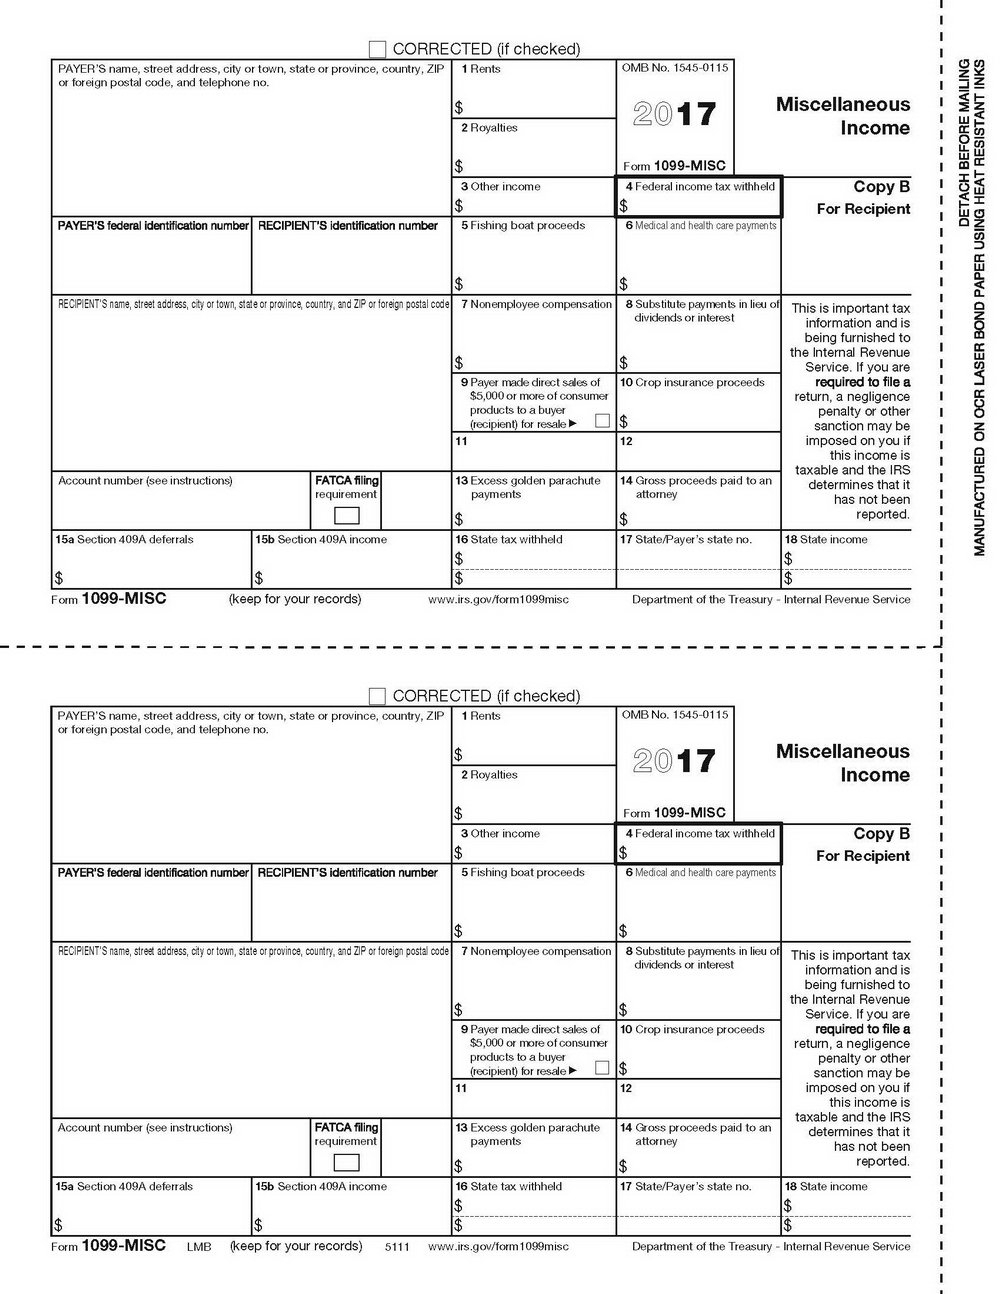 Printable 1099 Form 2017 Free | Mbm Legal - Free Printable 1099 Misc Forms